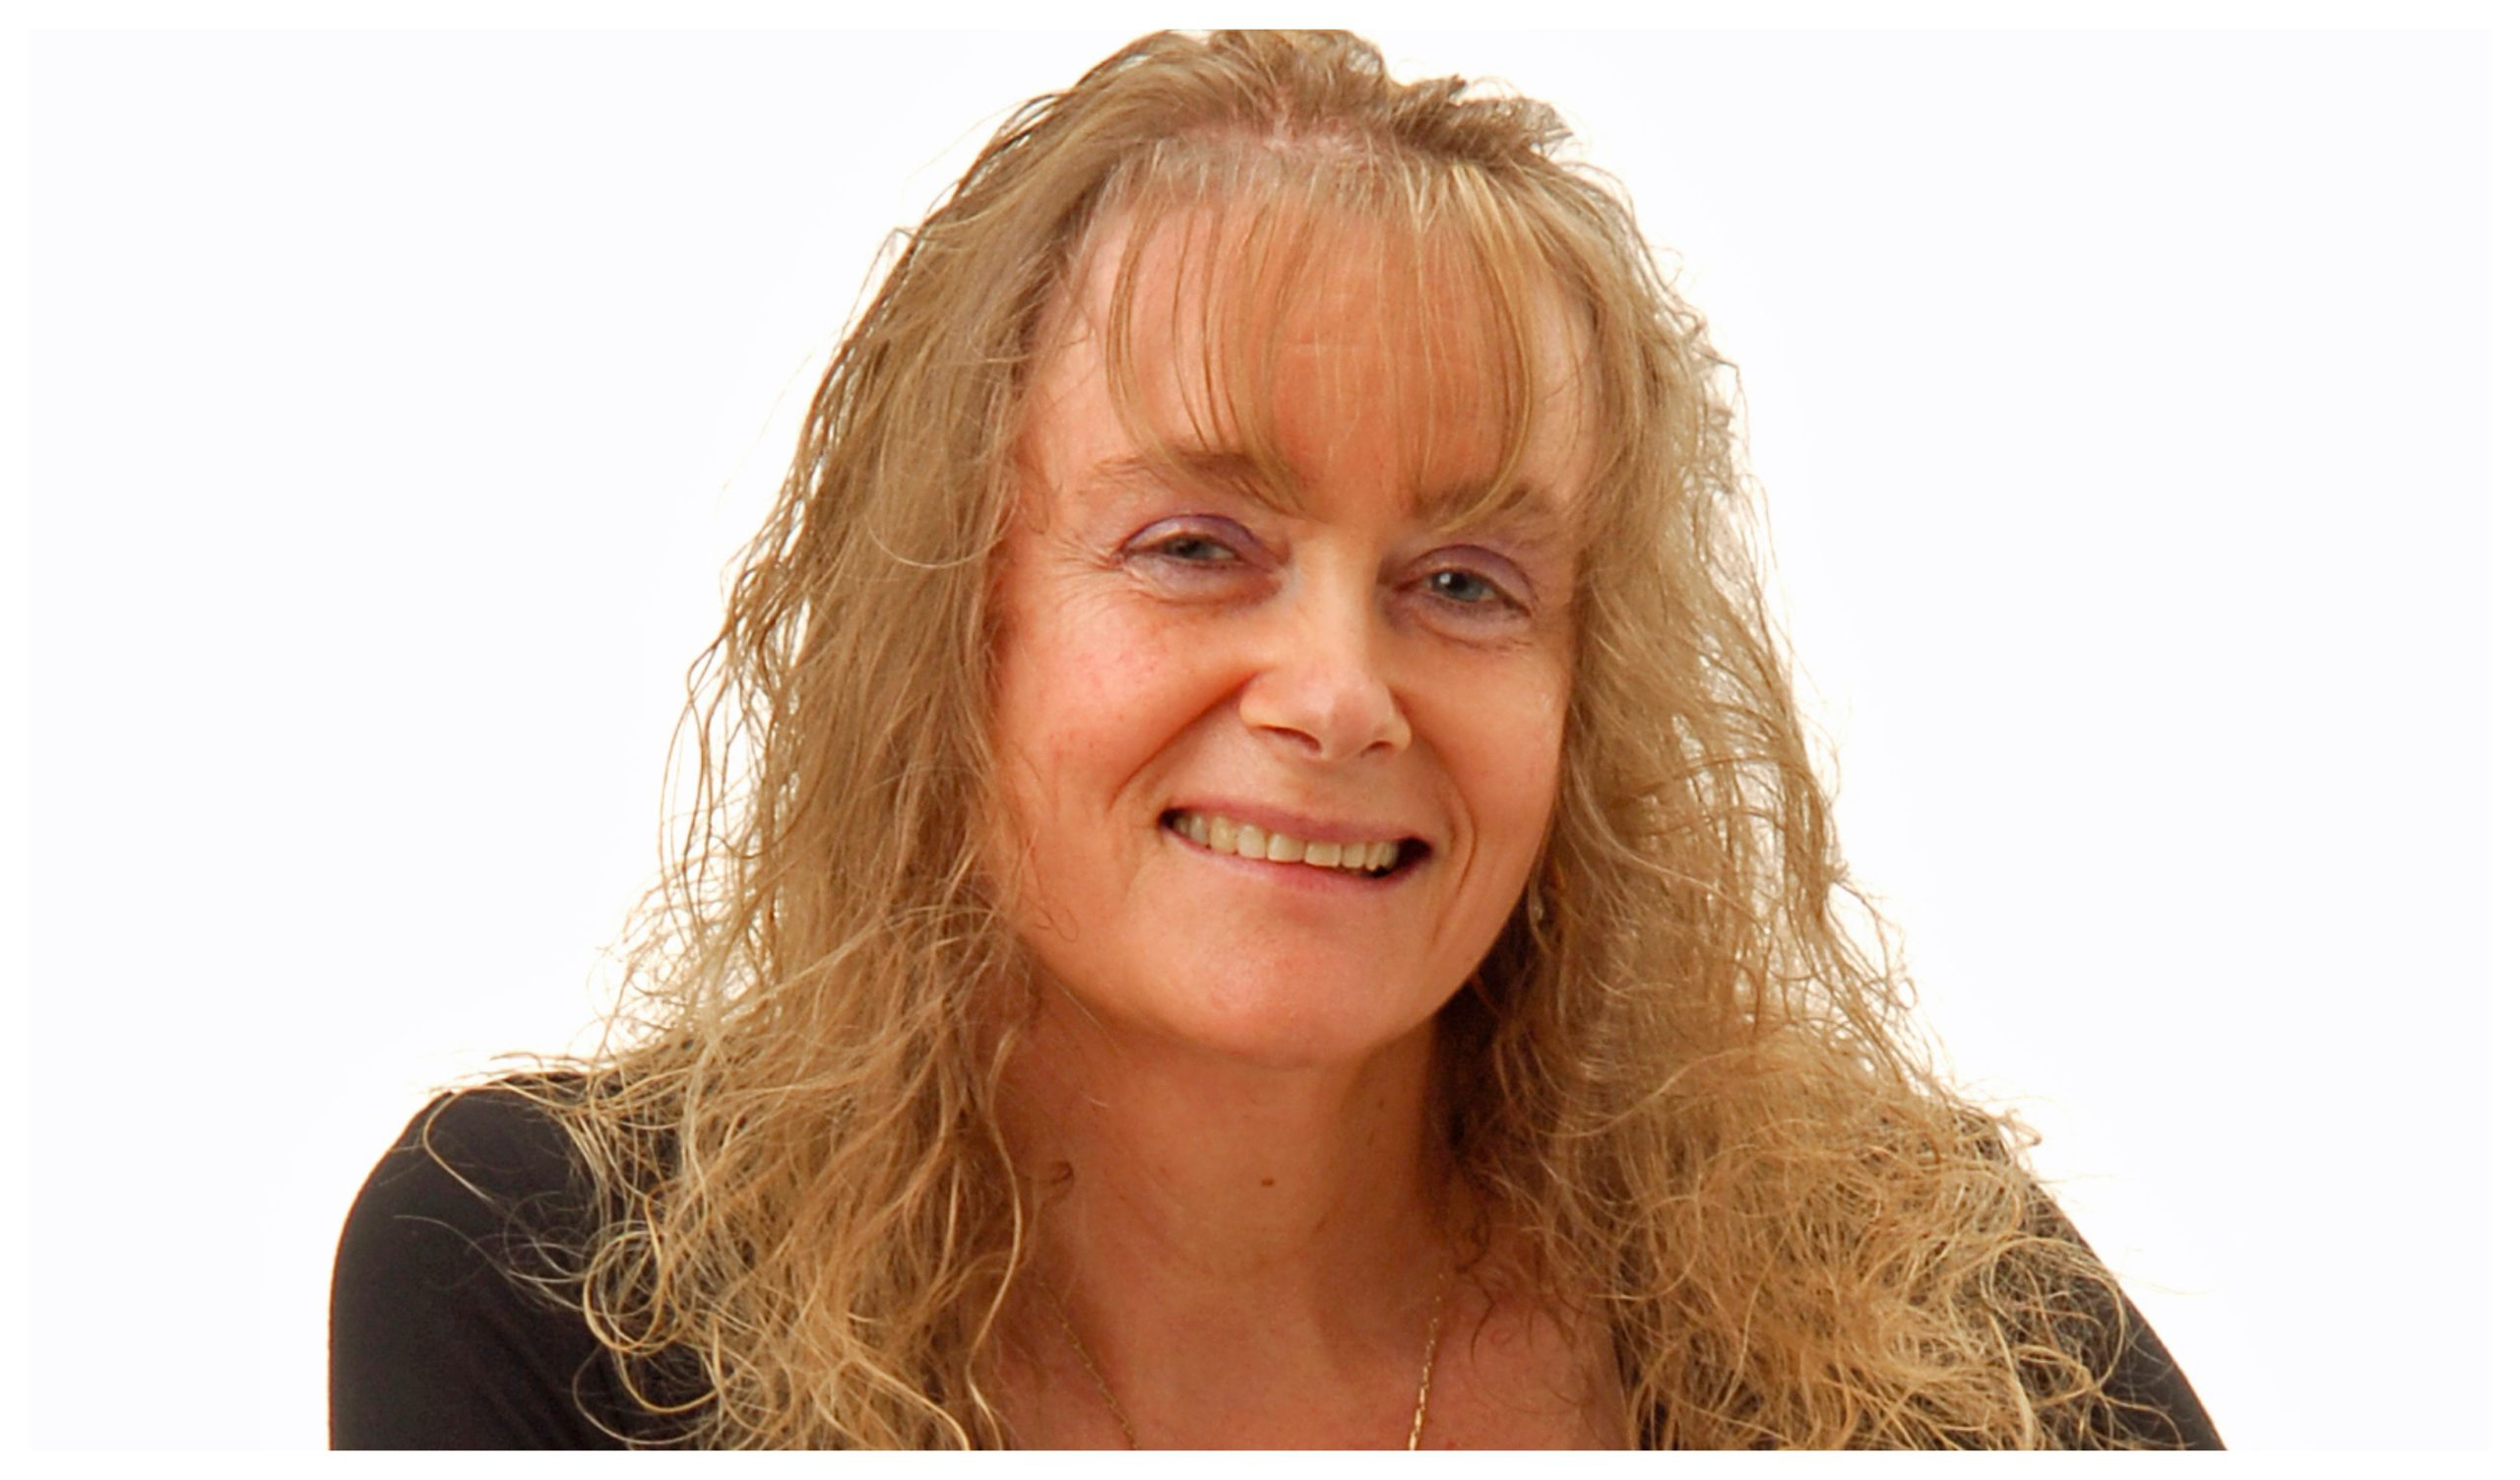 The efforts have been led by Professor Jill Belch, who as well as being a member of the community council is a cardiovascular researcher and physician at Dundee University.